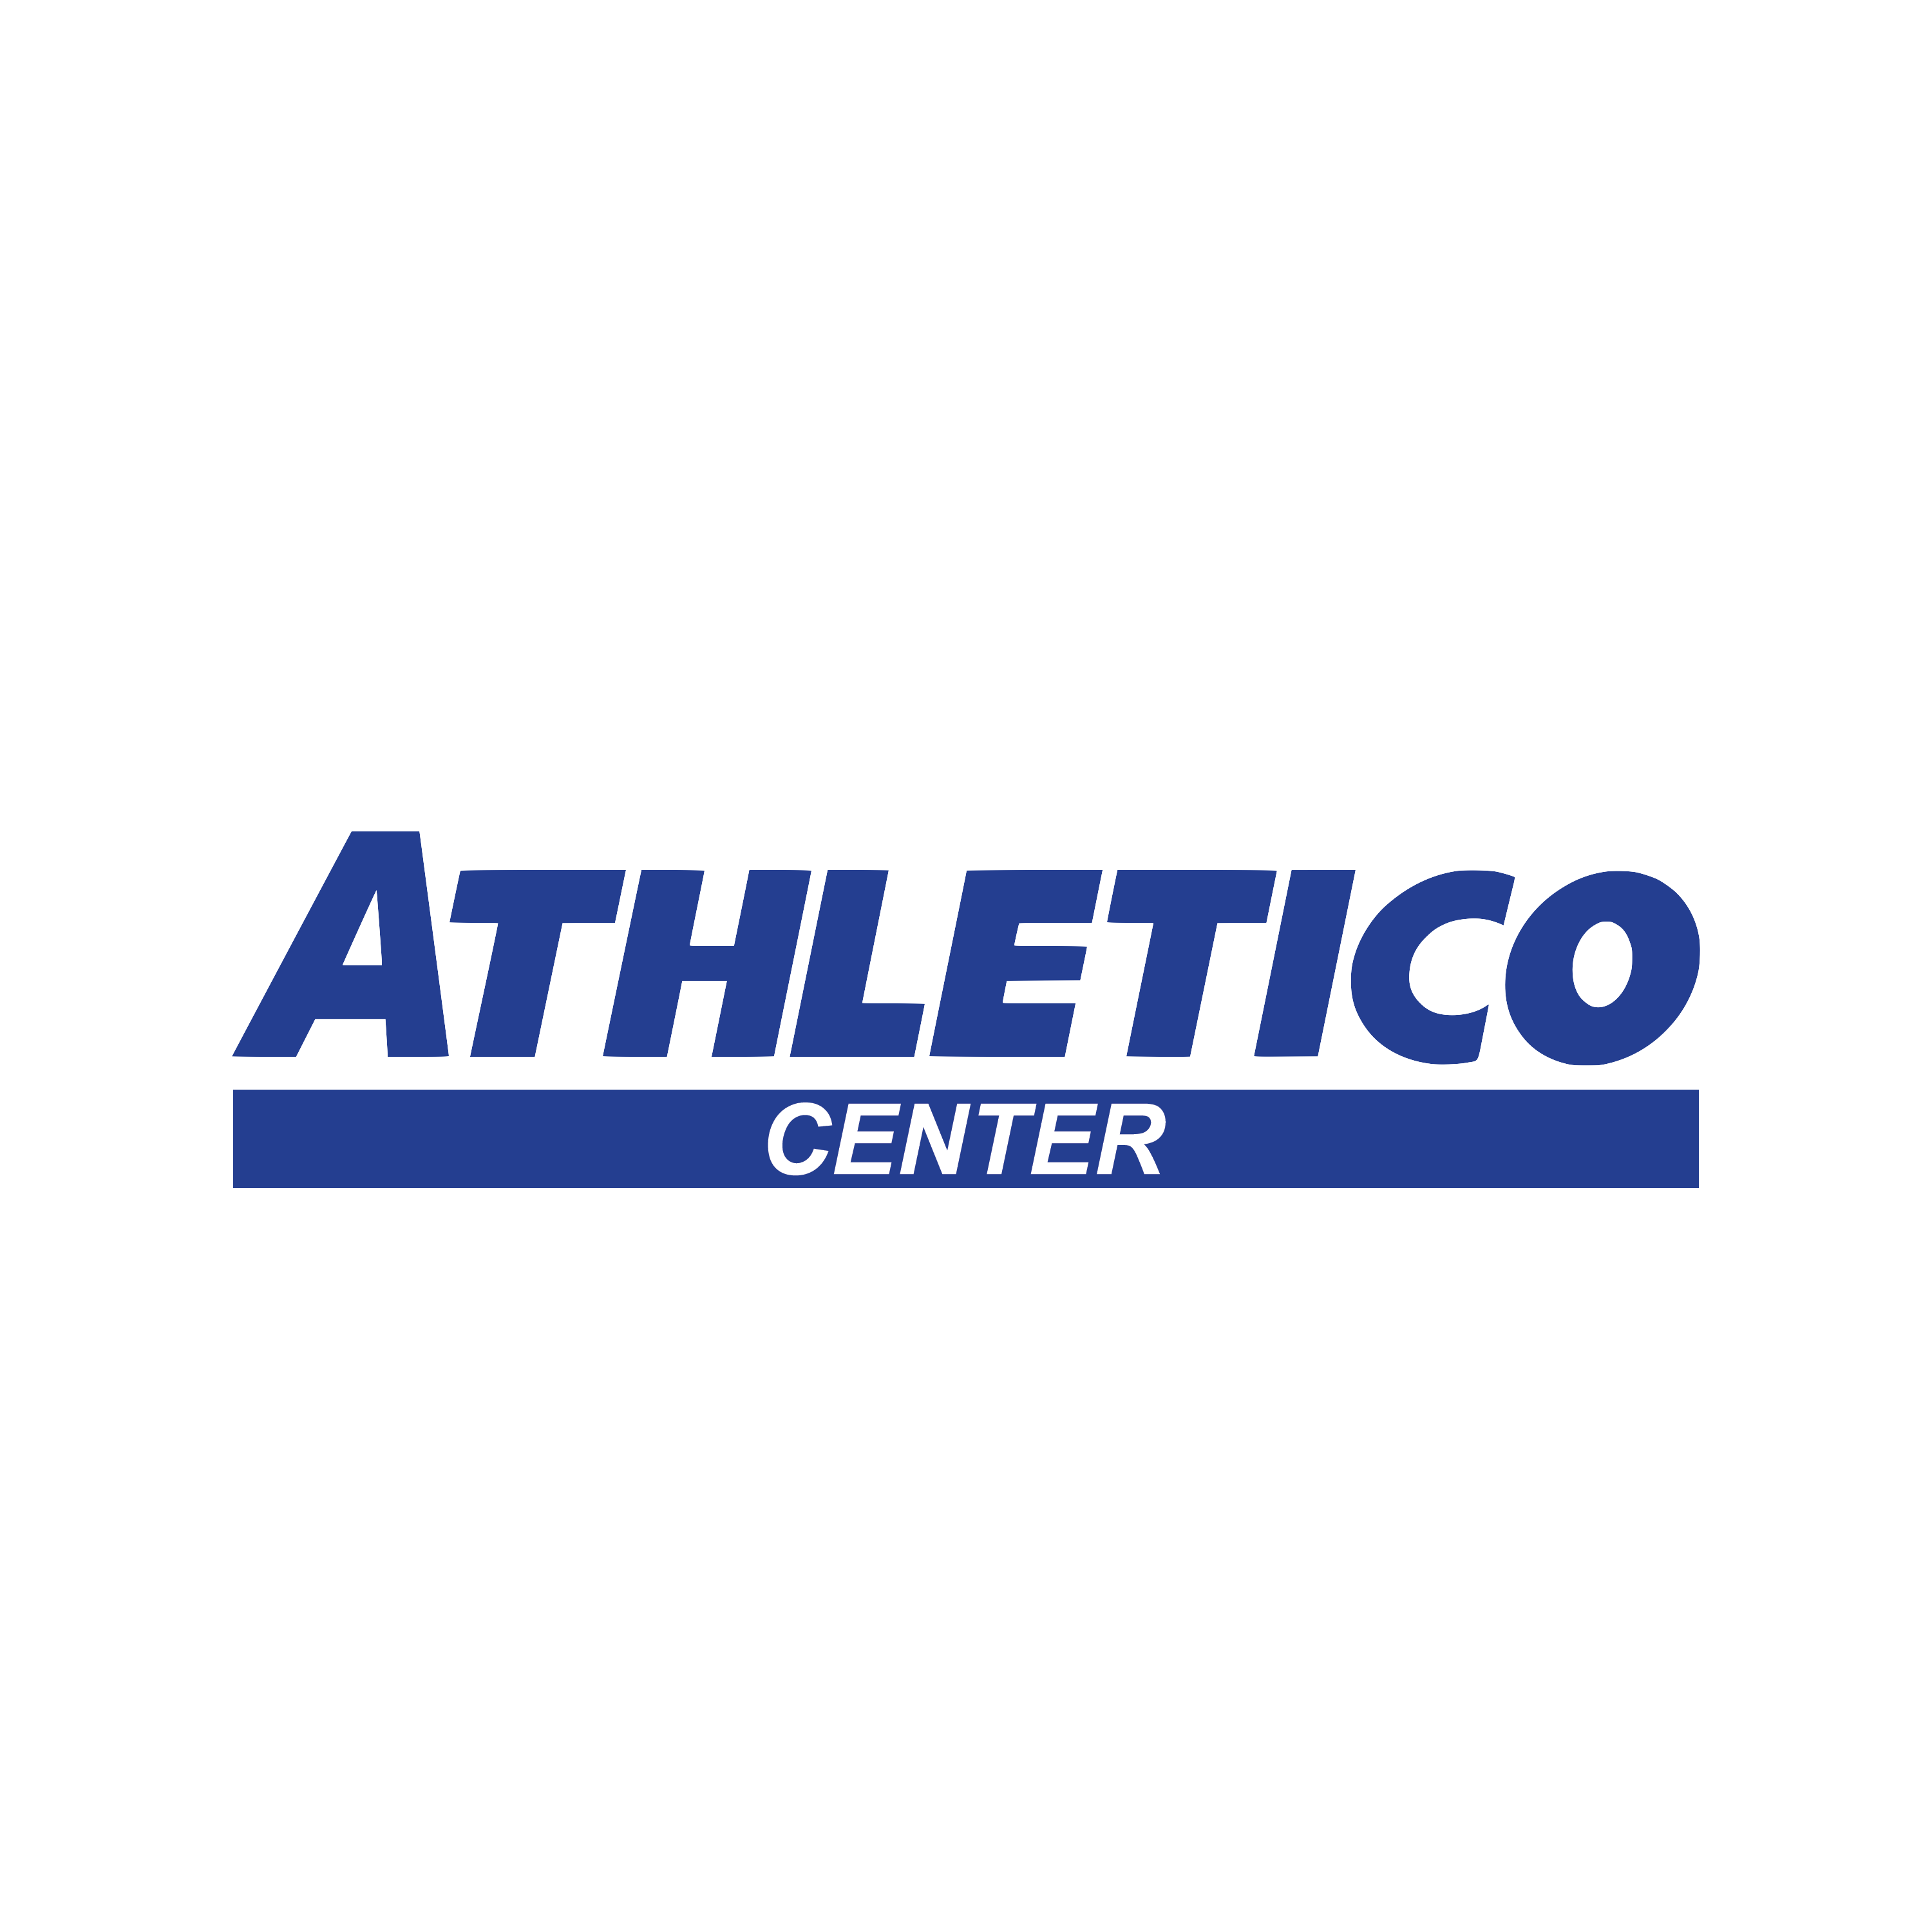 The Athletico Center Logo